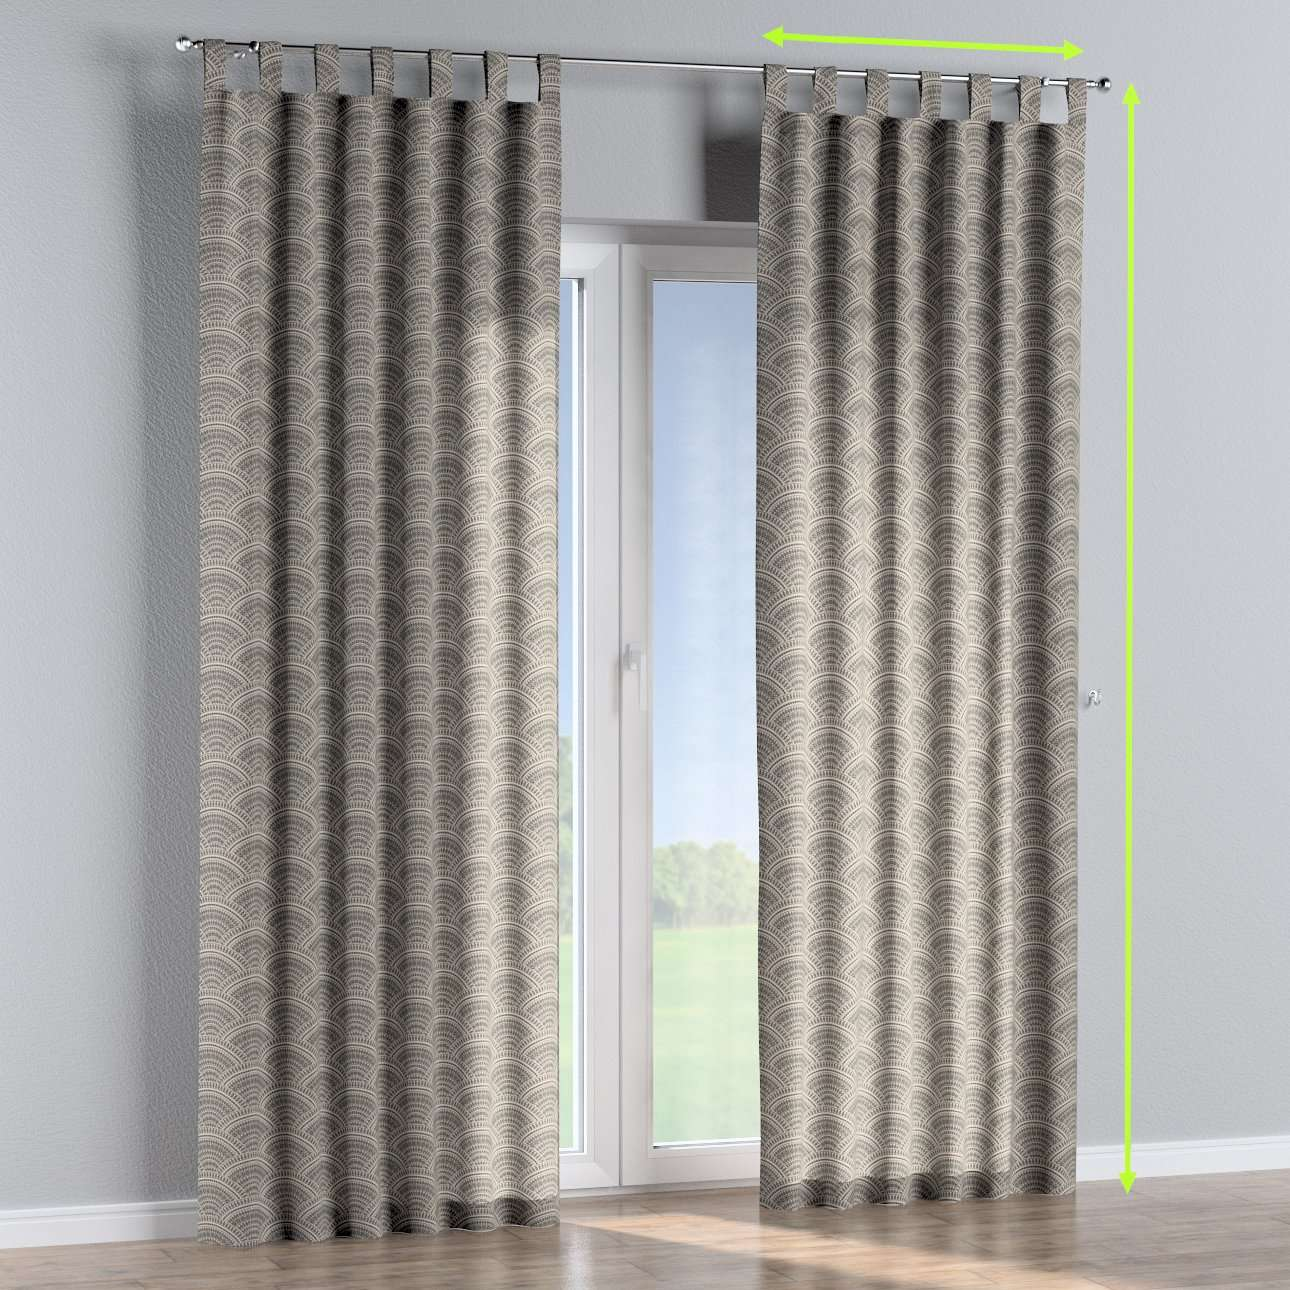 Tab top curtains in collection Comics/Geometrical, fabric: 141-19